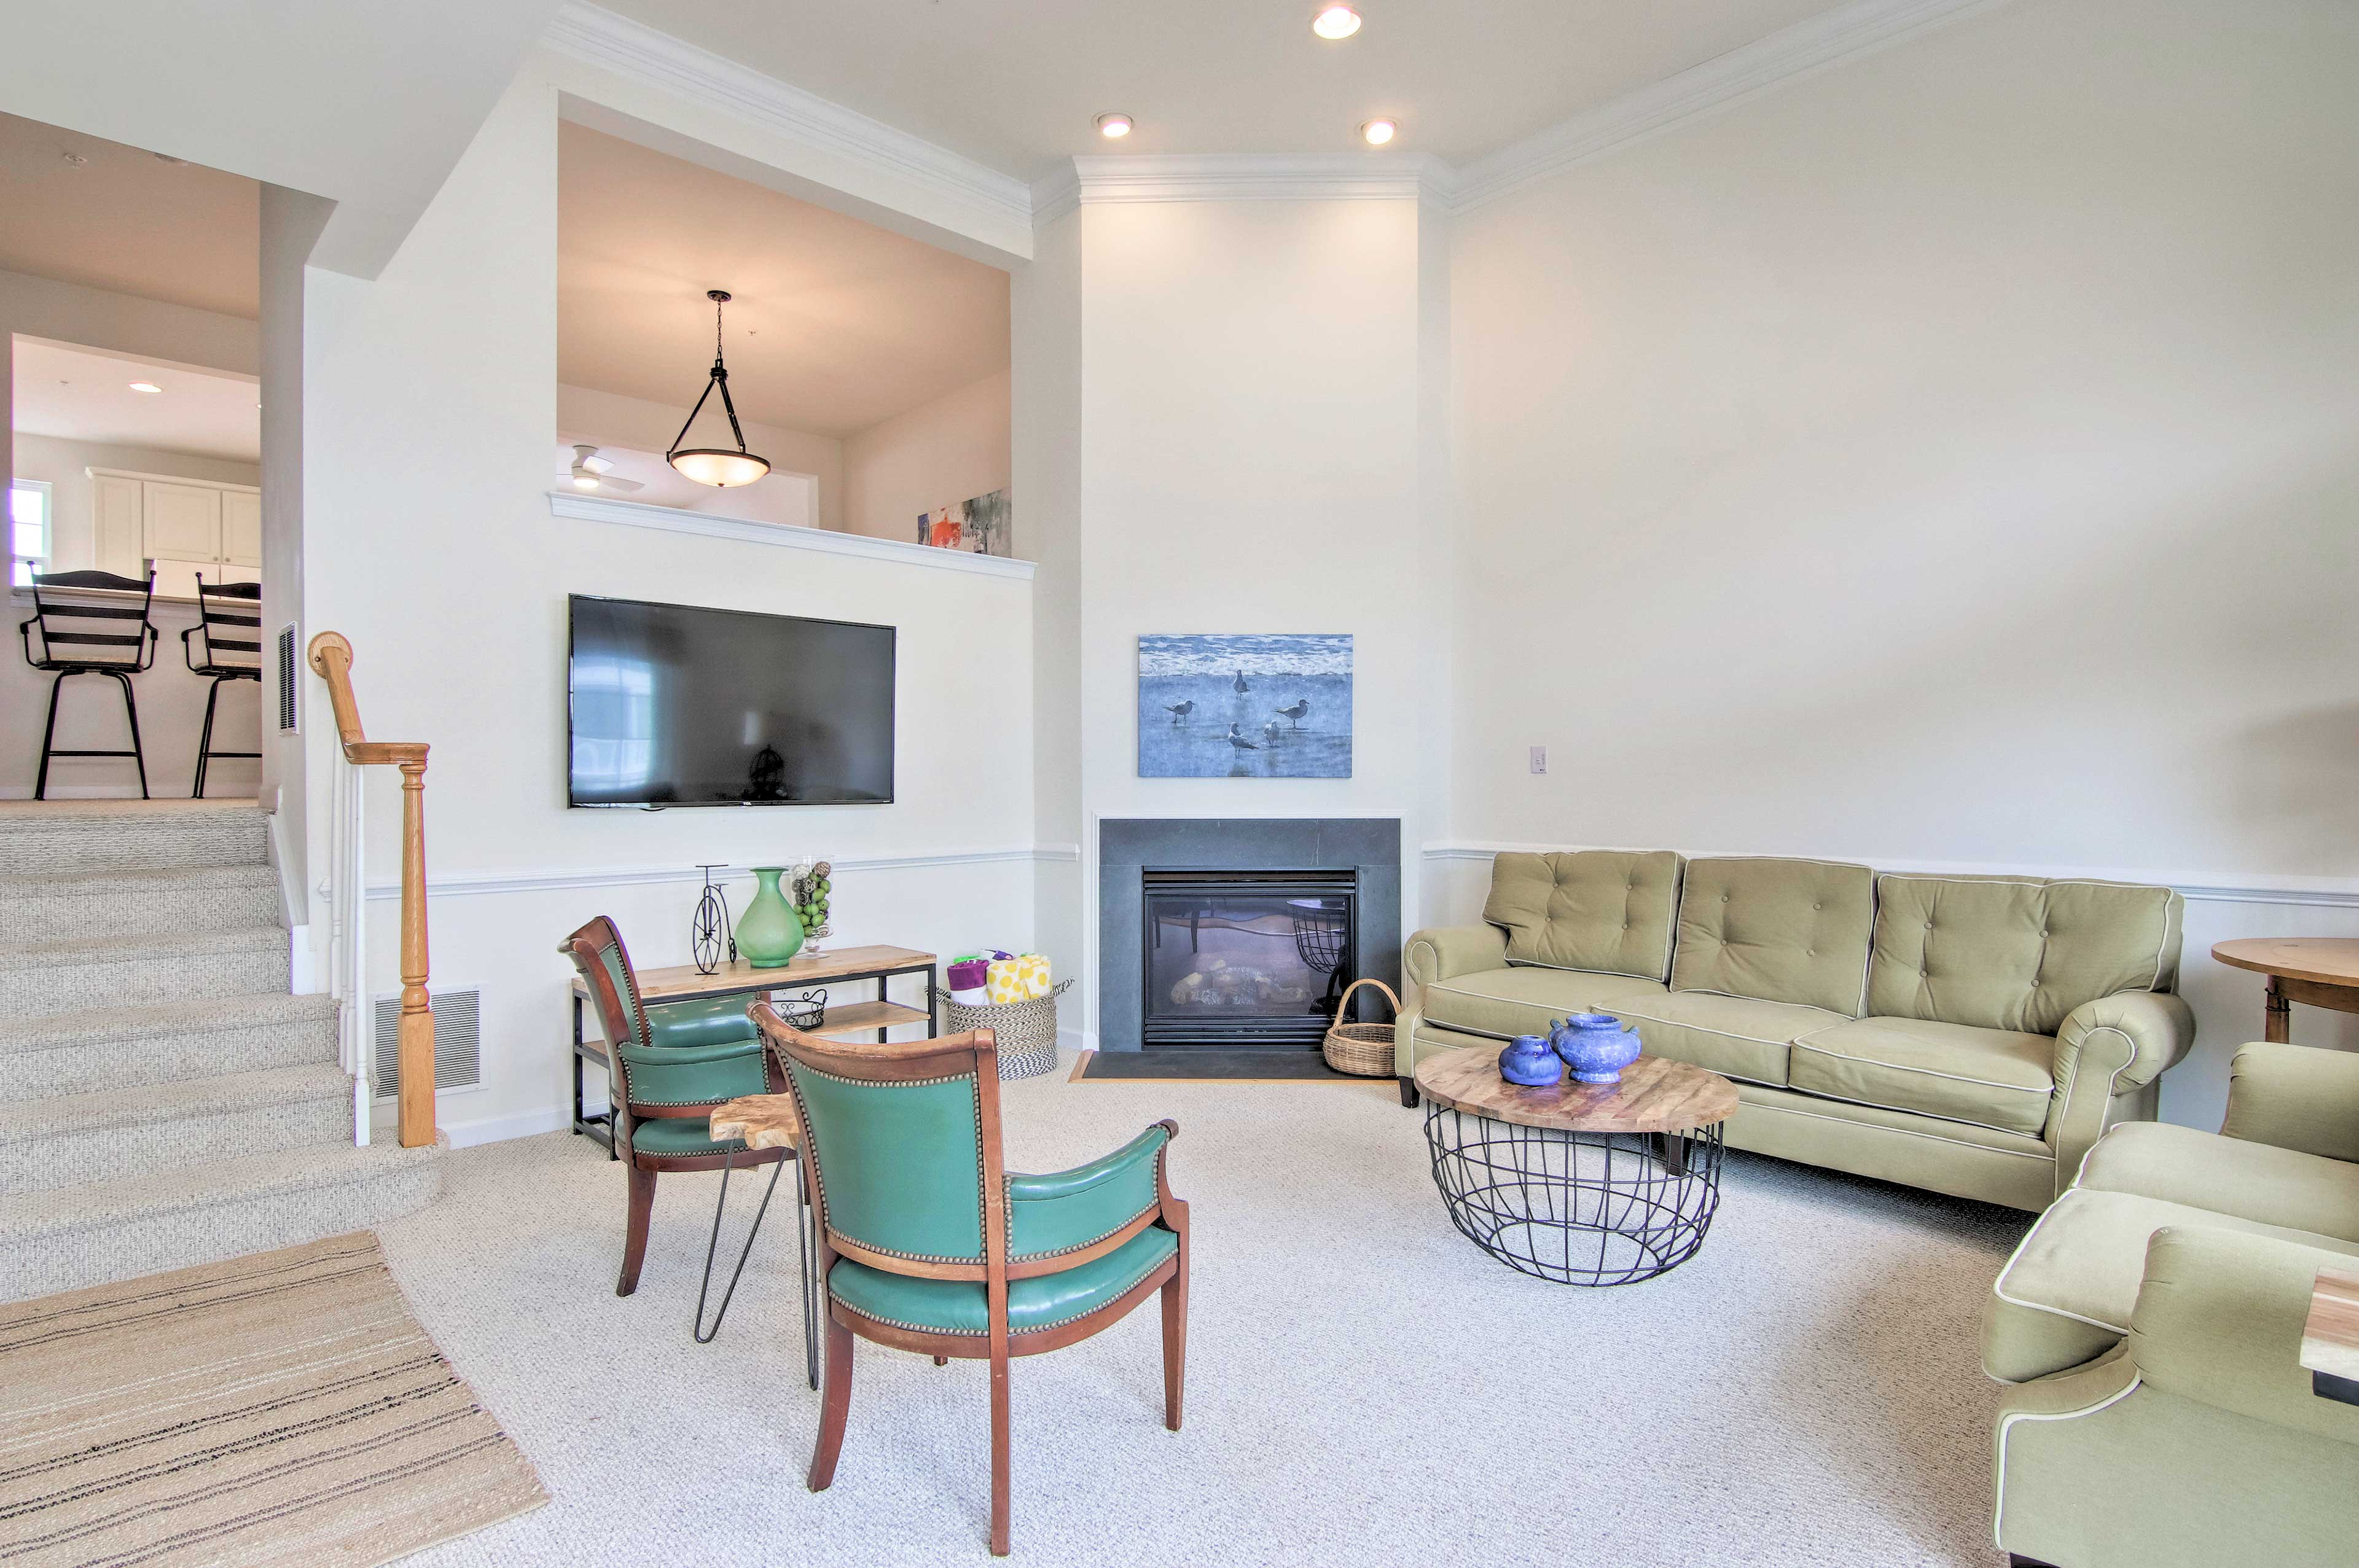 Cool off in the vacation rental's well-appointed interior!